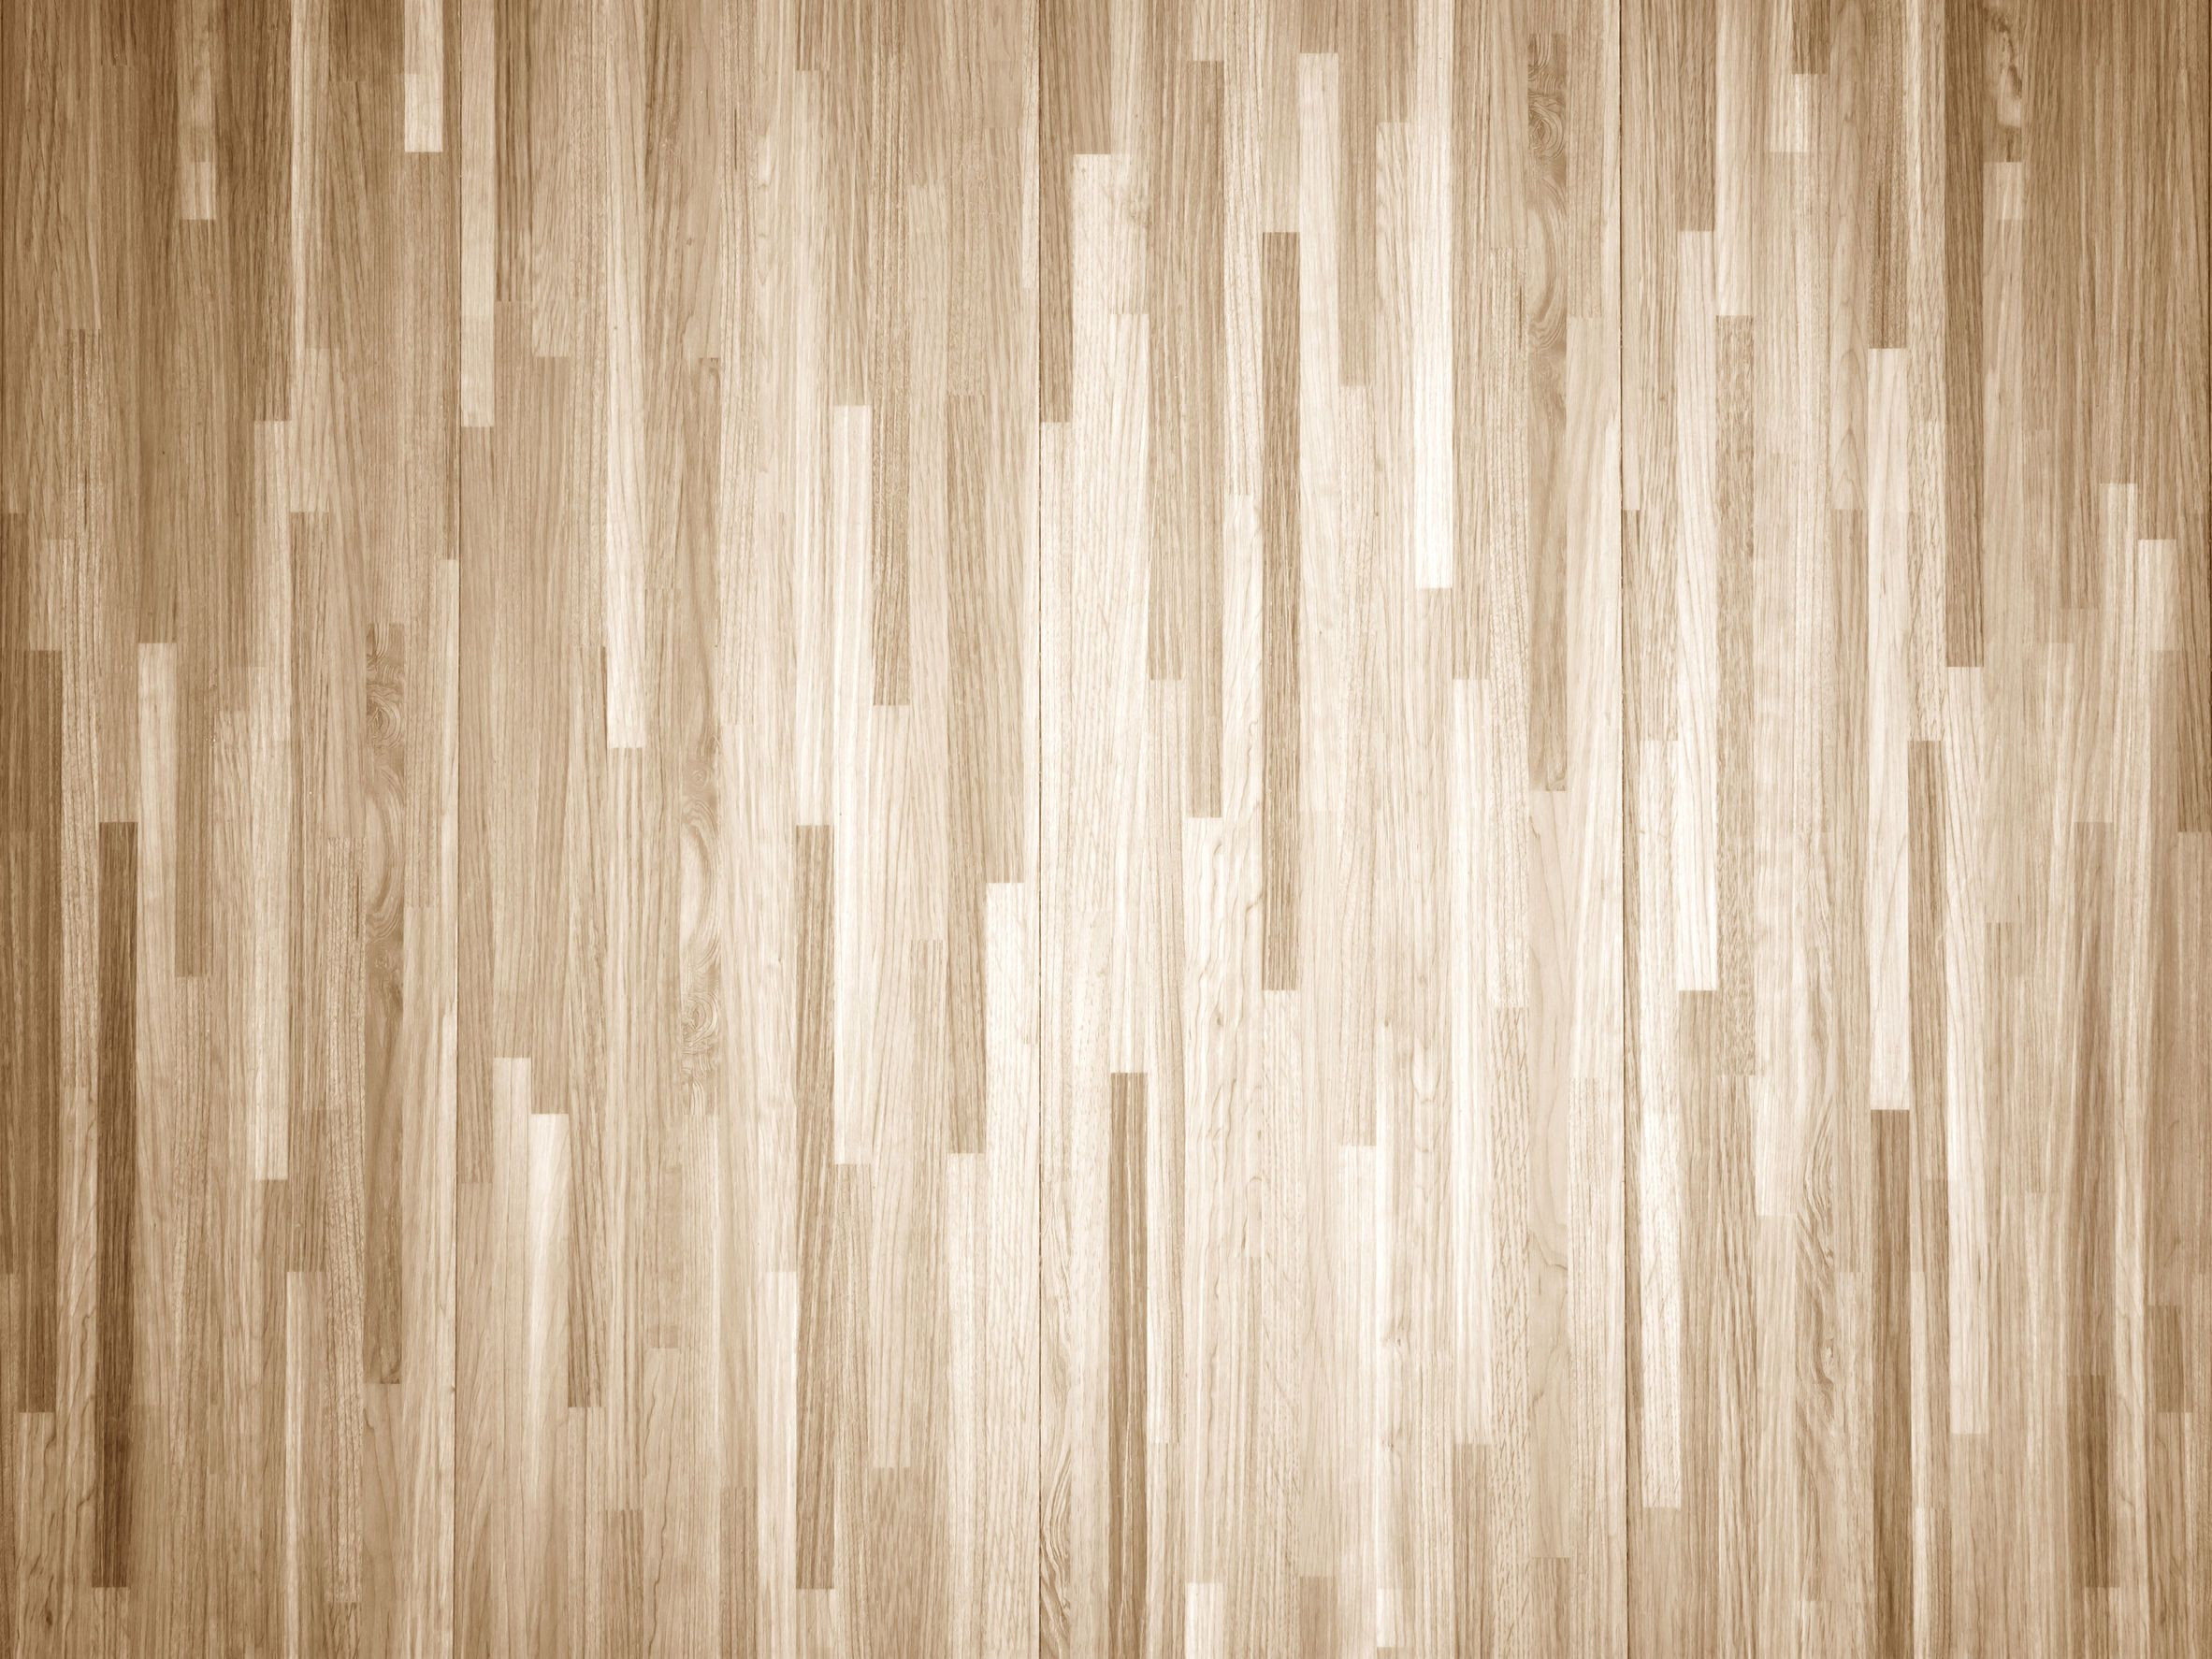 hardwood floor repair products of how to chemically strip wood floors woodfloordoctor com intended for you